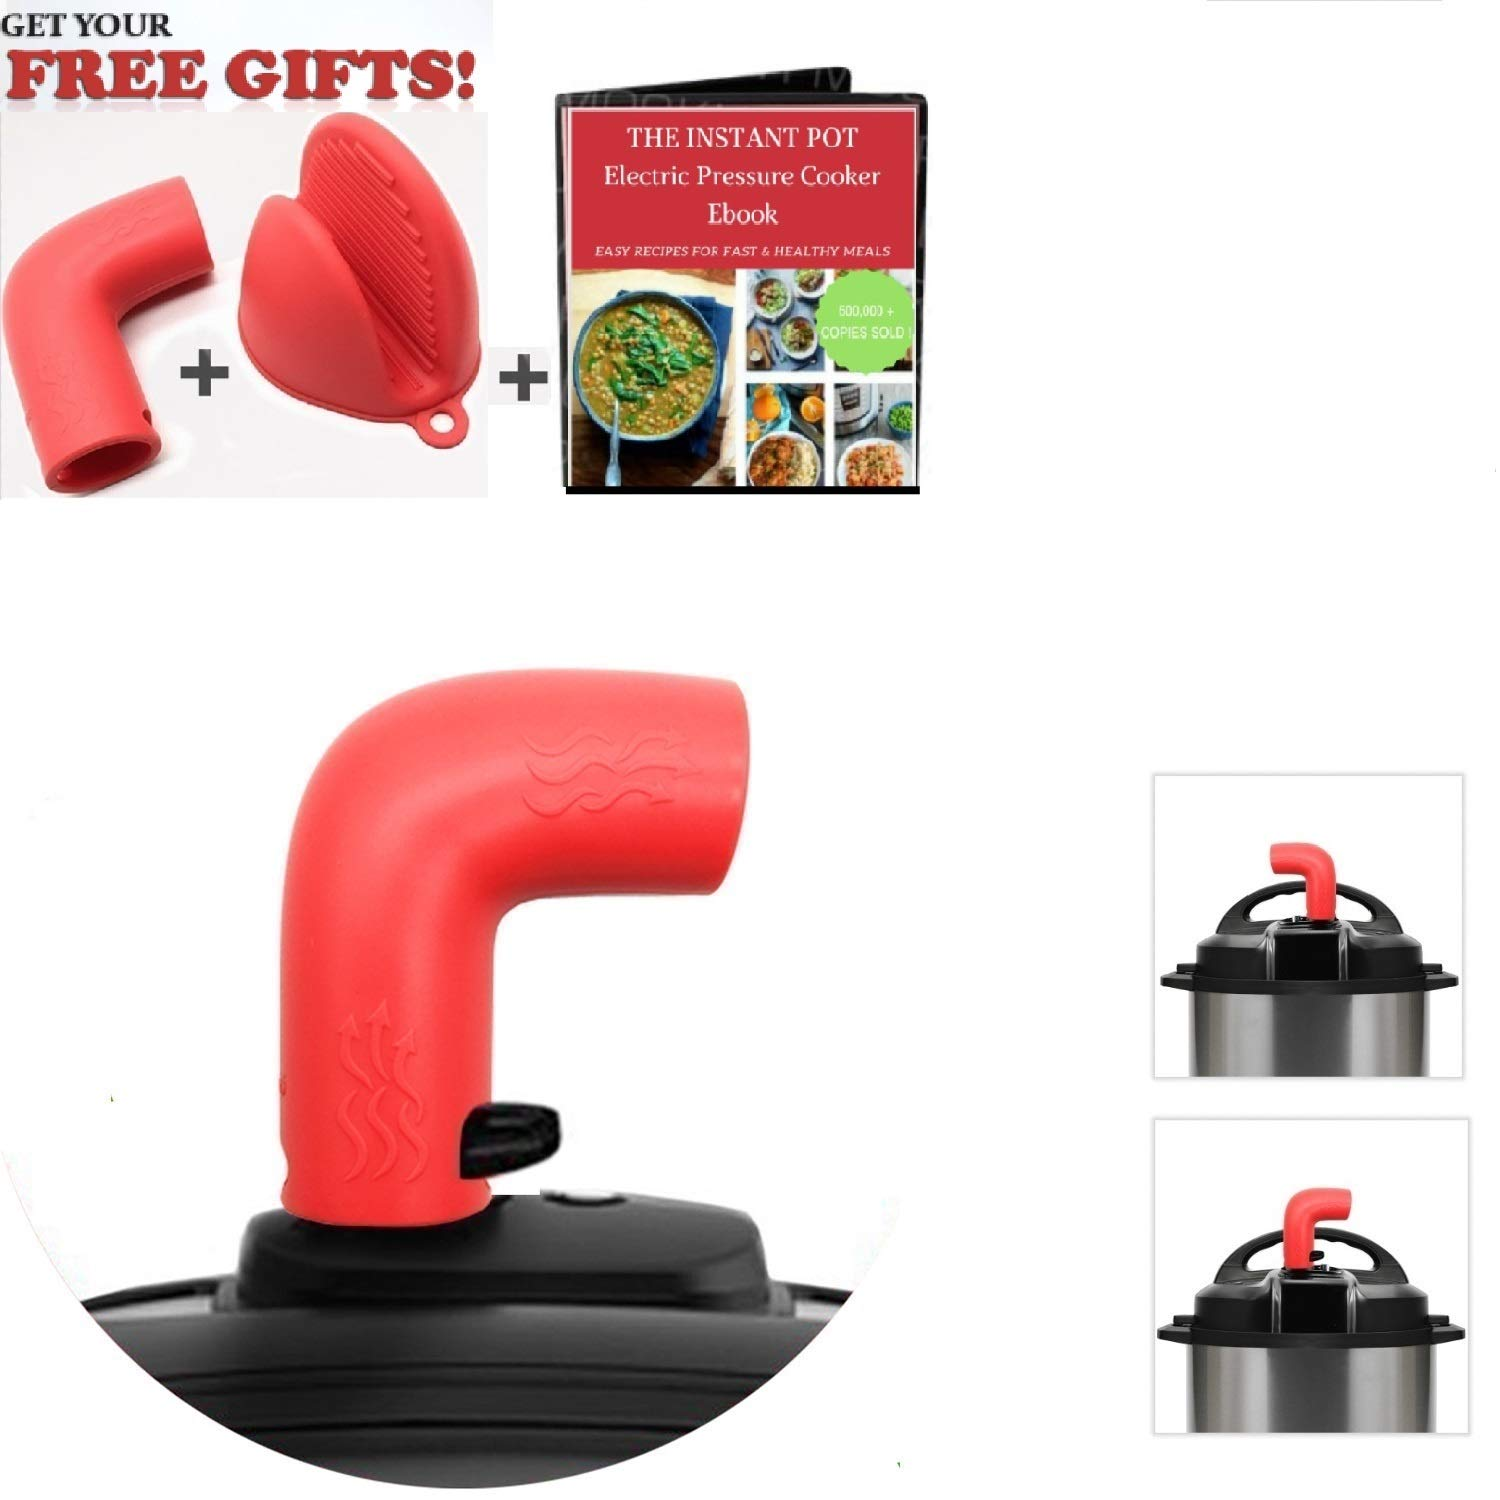 Steam Diverter Silicone Pressure Release Accessory, for Instant Pot Electric Pressure Cooker Duo/Duo Plus Smart Viva Nova Models, with FREE Gifts